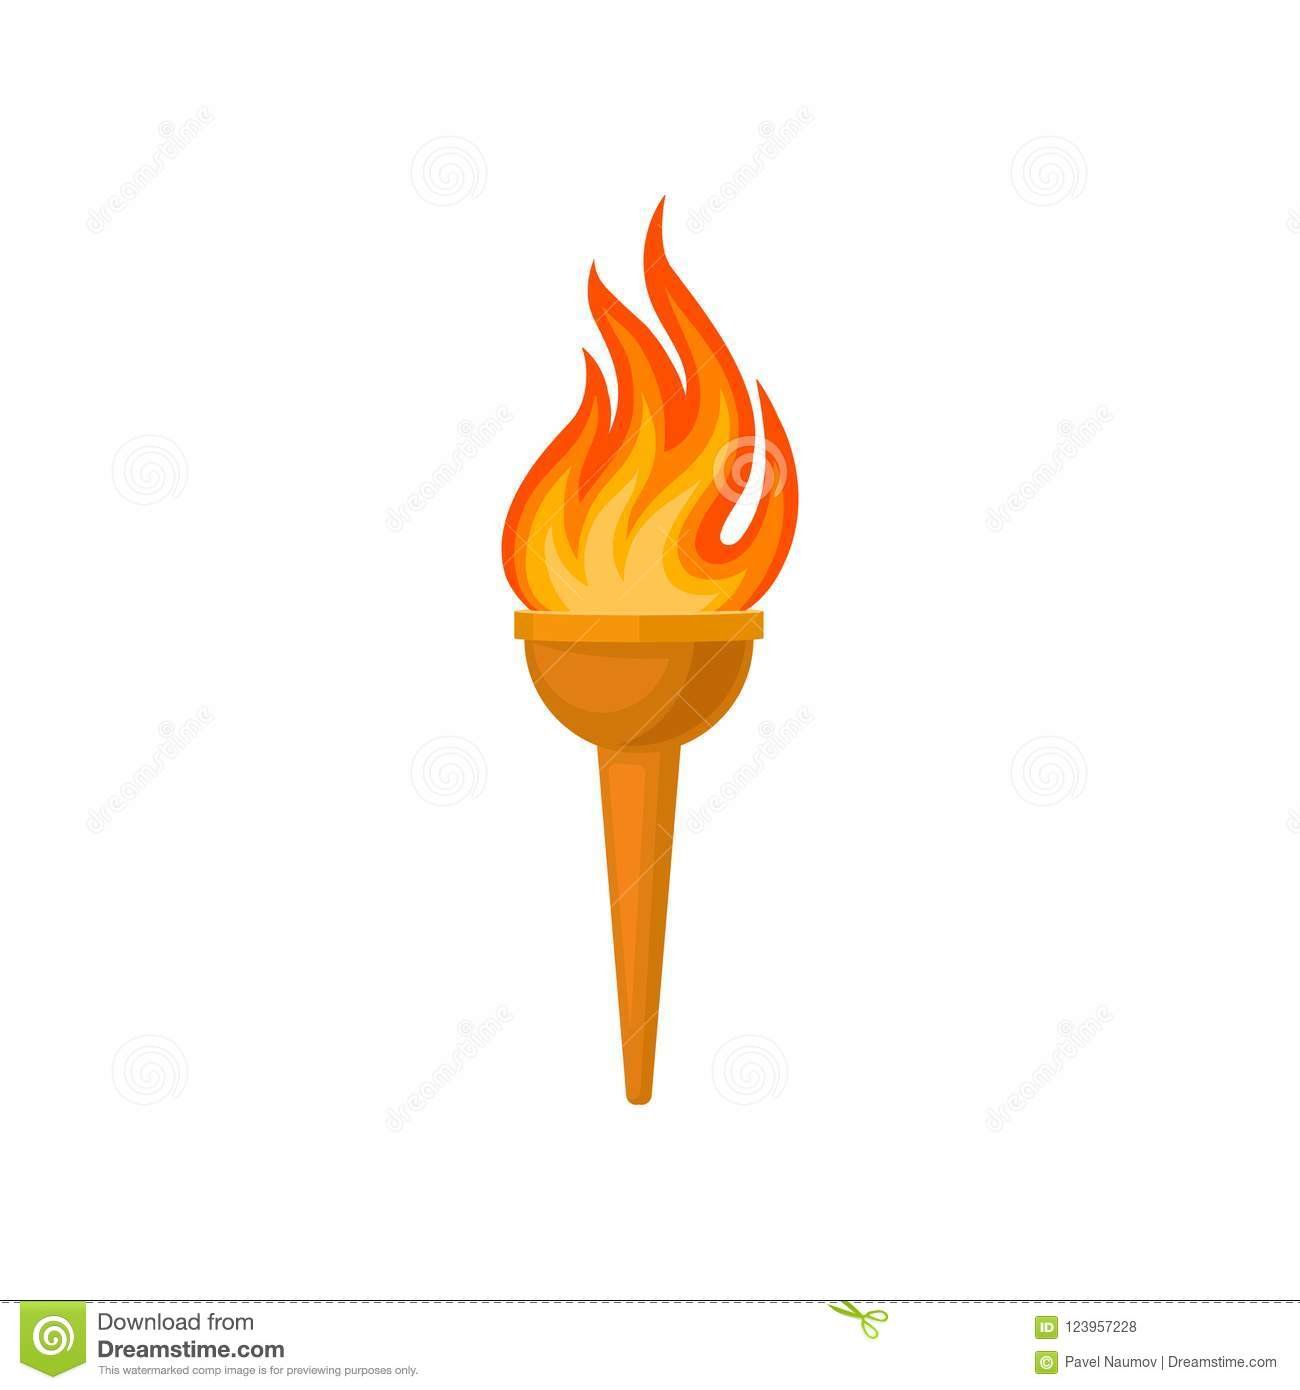 Torch With Flame Vector Illustration On A White Background Stock Vector Illustration Of Achievement Game 123957228